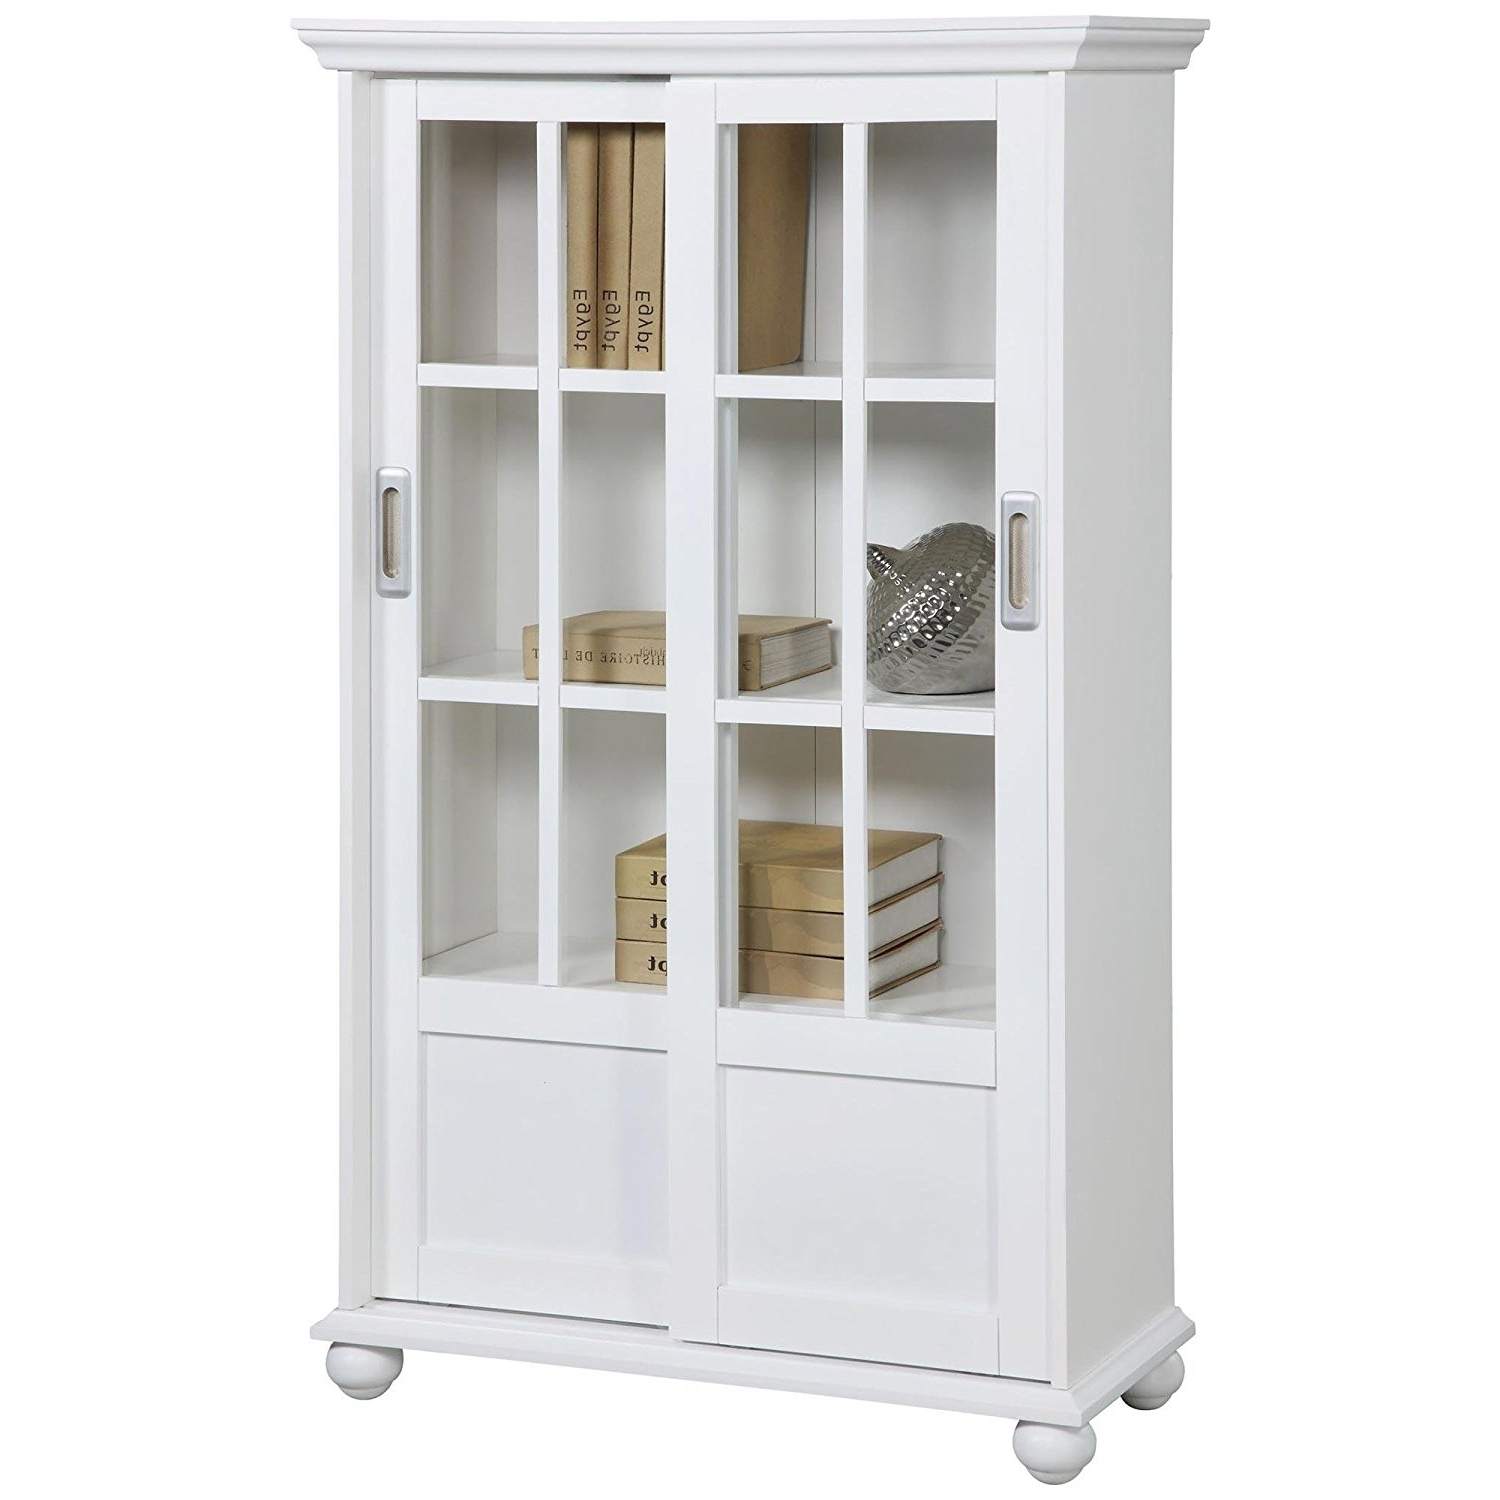 Favorite Amazon: Ameriwood Home Aaron Lane Bookcase With Sliding Glass Inside White Bookcases With Glass Doors (View 6 of 15)